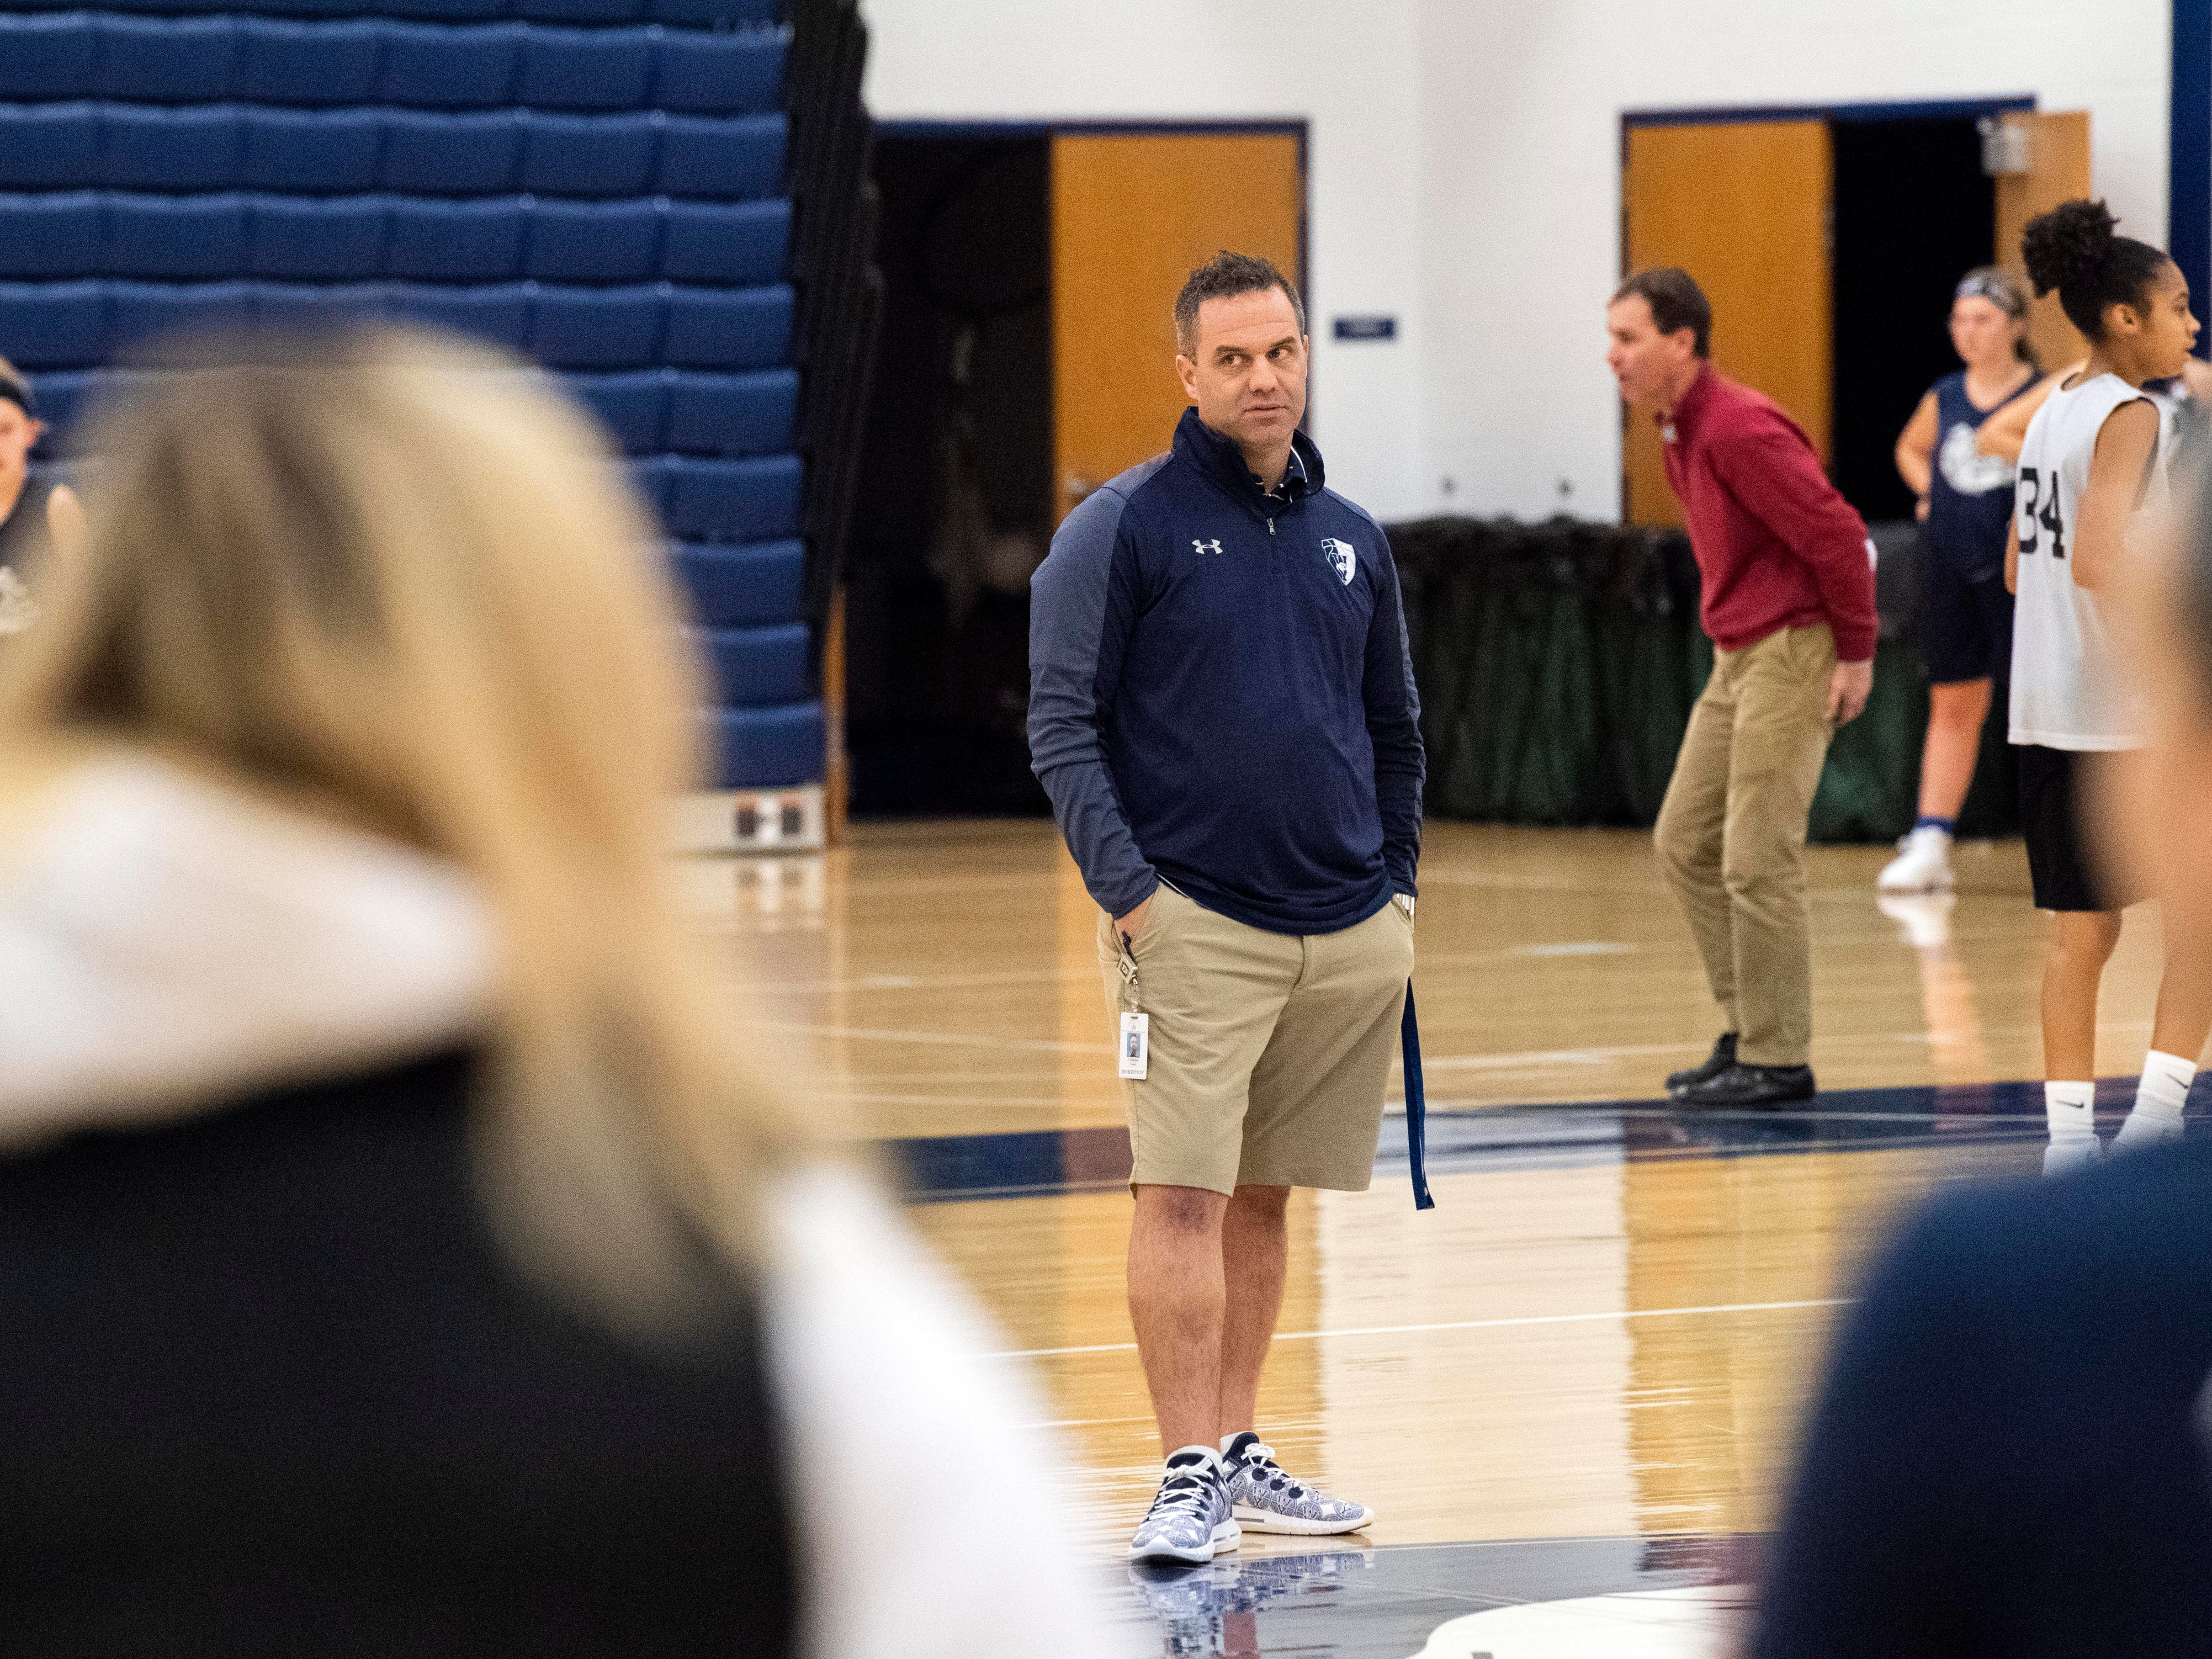 West York girls' basketball head coach James Kunkle watches his players during the first official day of winter sports practice on Friday, November 16, 2018.